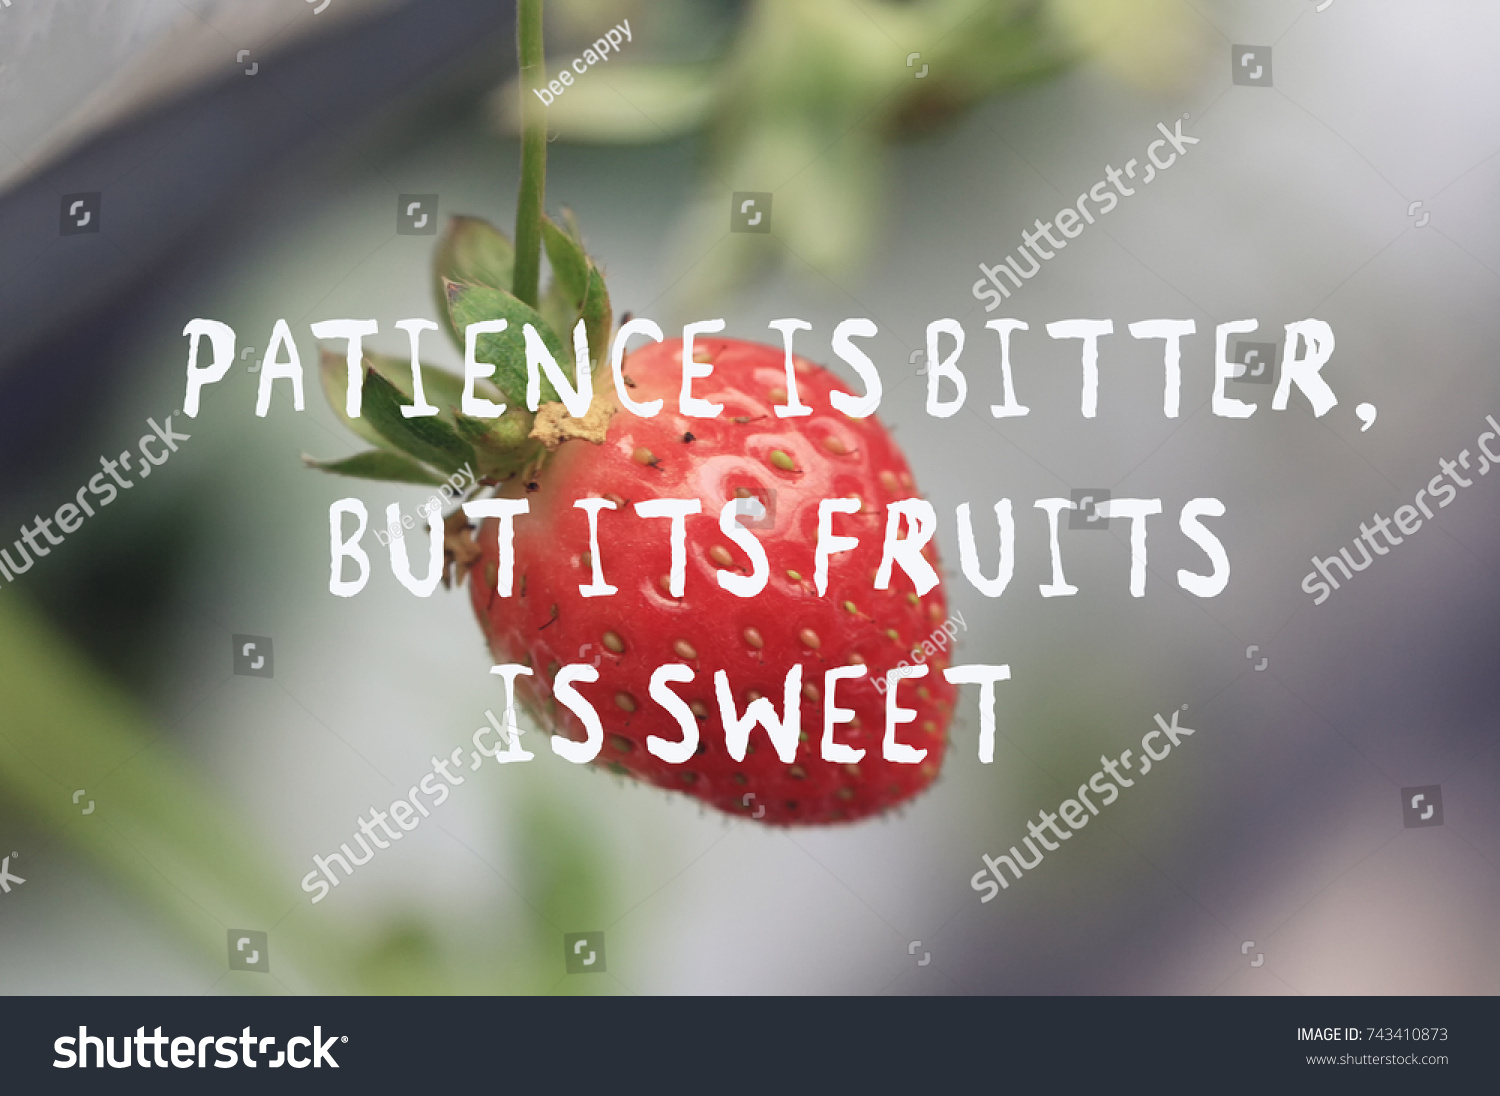 Life Inspirational Quotes Life Inspirational Quotes Patience Bitter Fruit Stock Photo